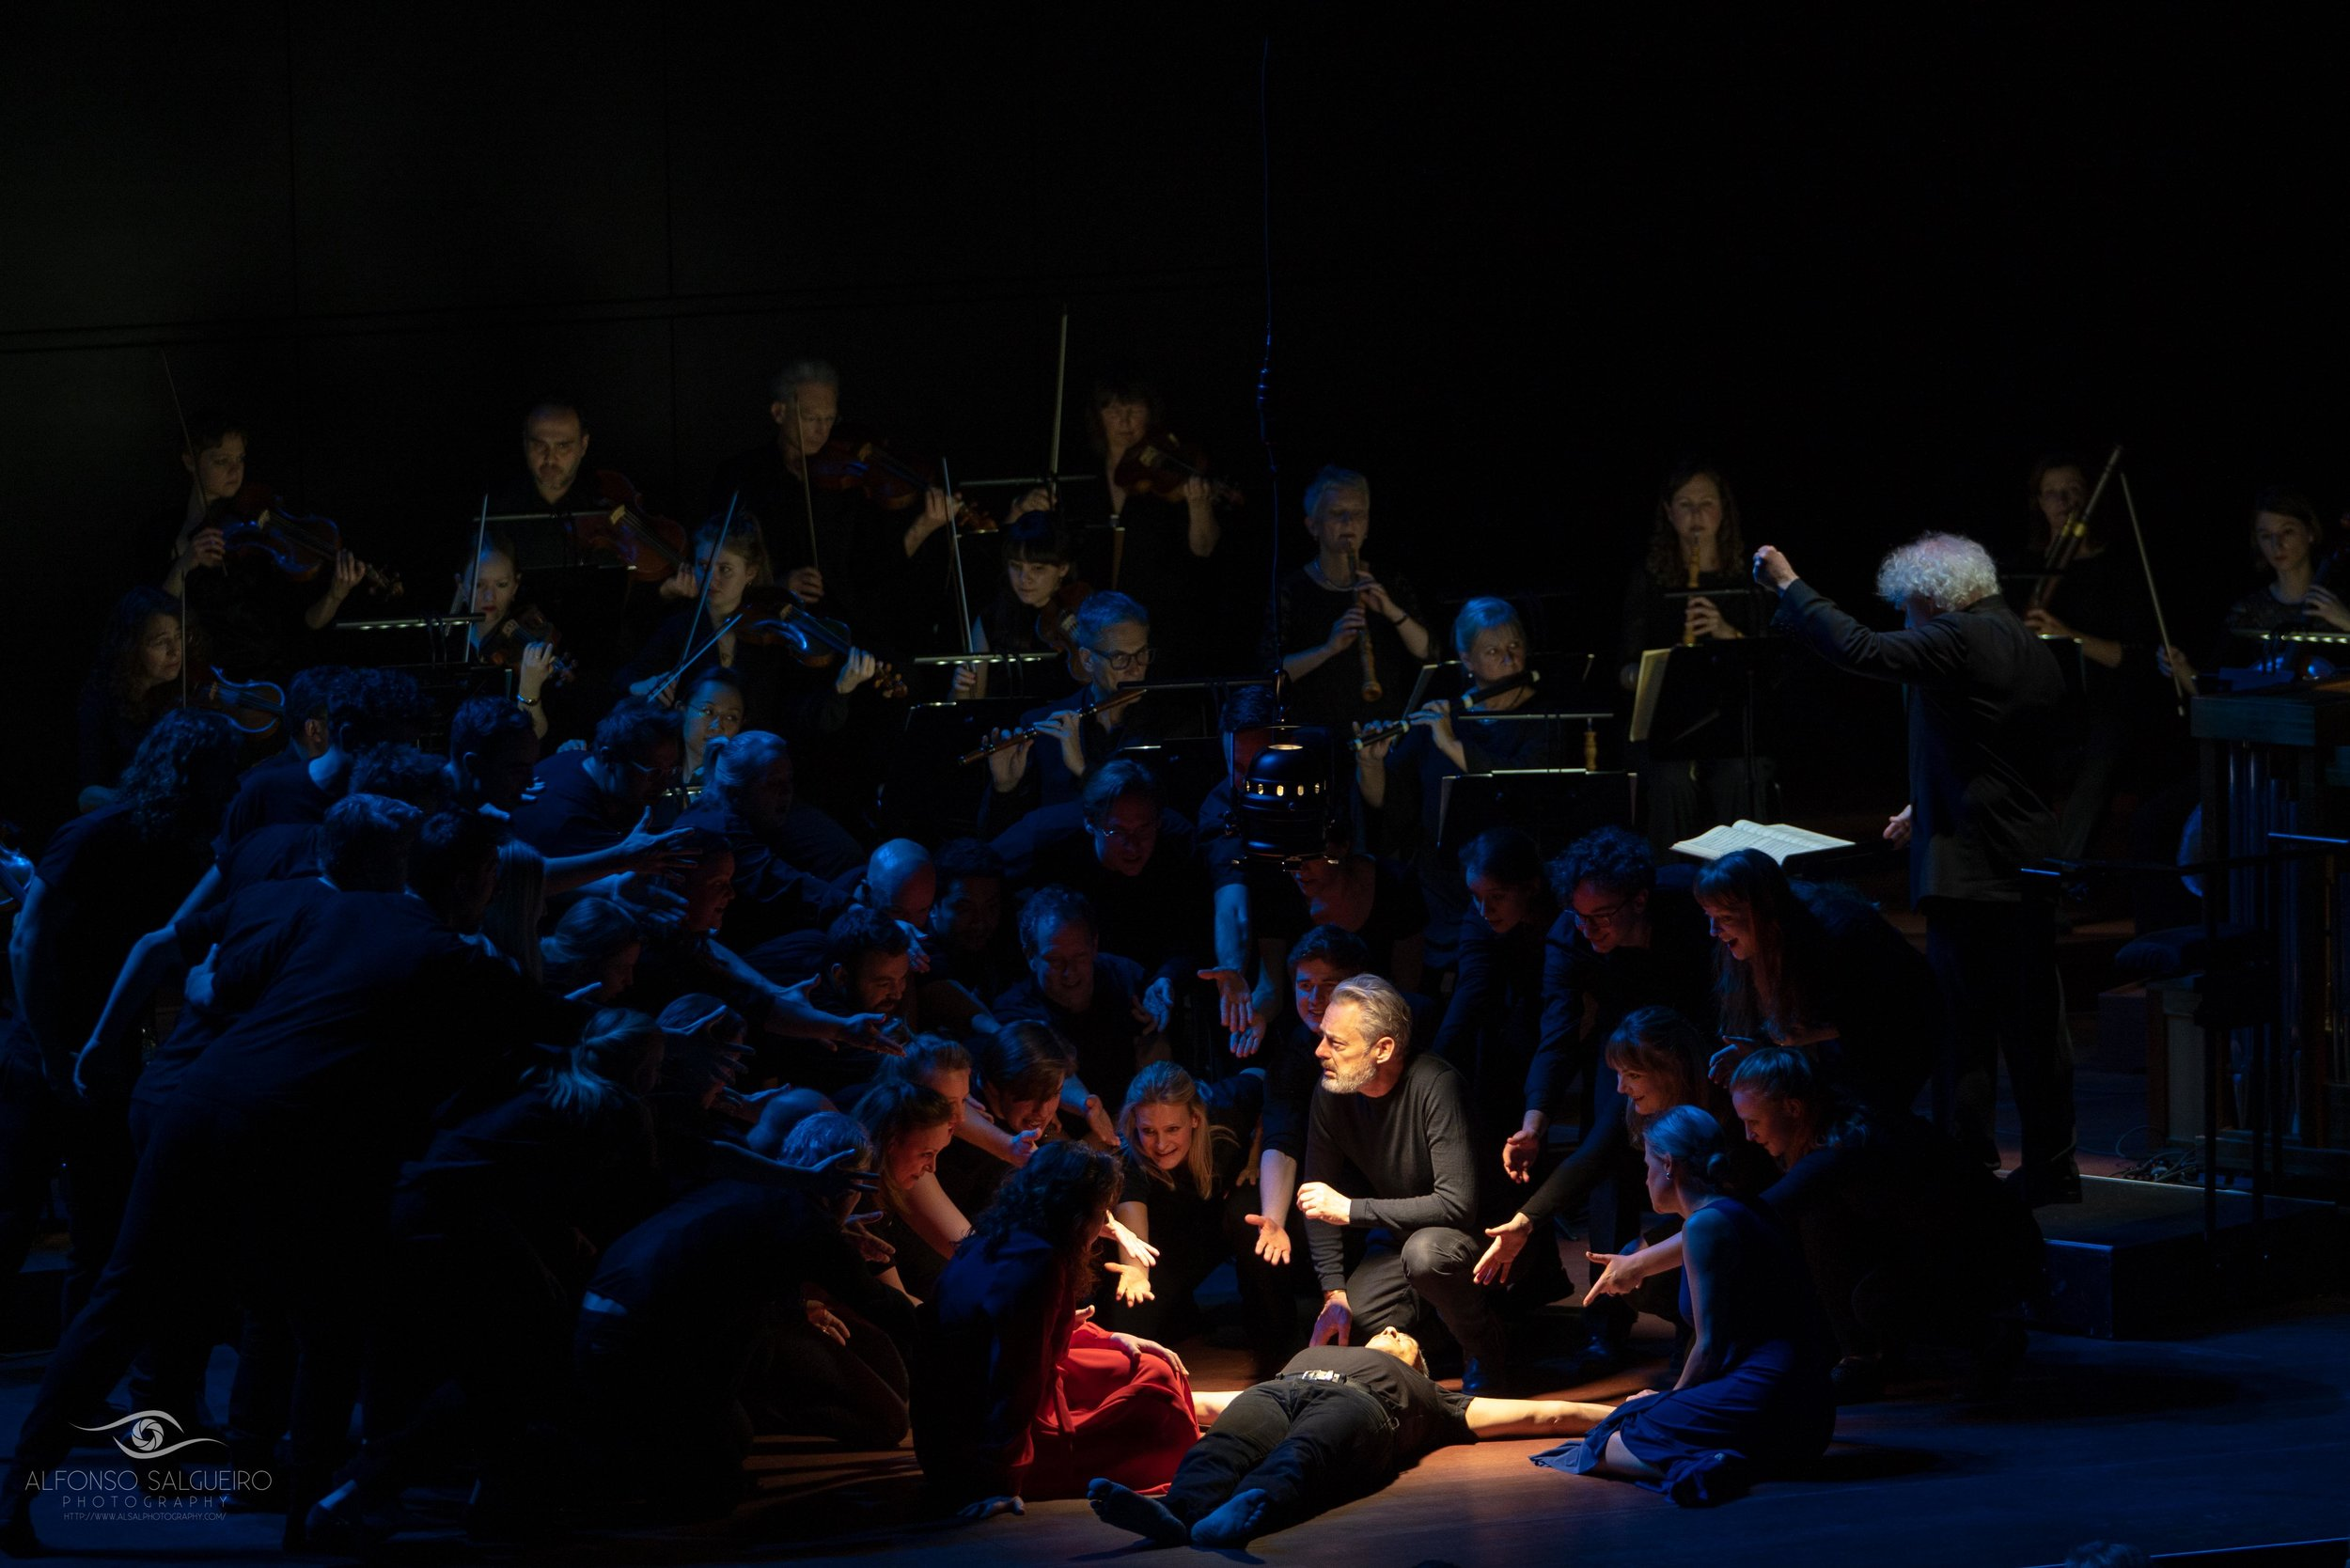 Philharmonie 18-19 season in images_-10.jpg